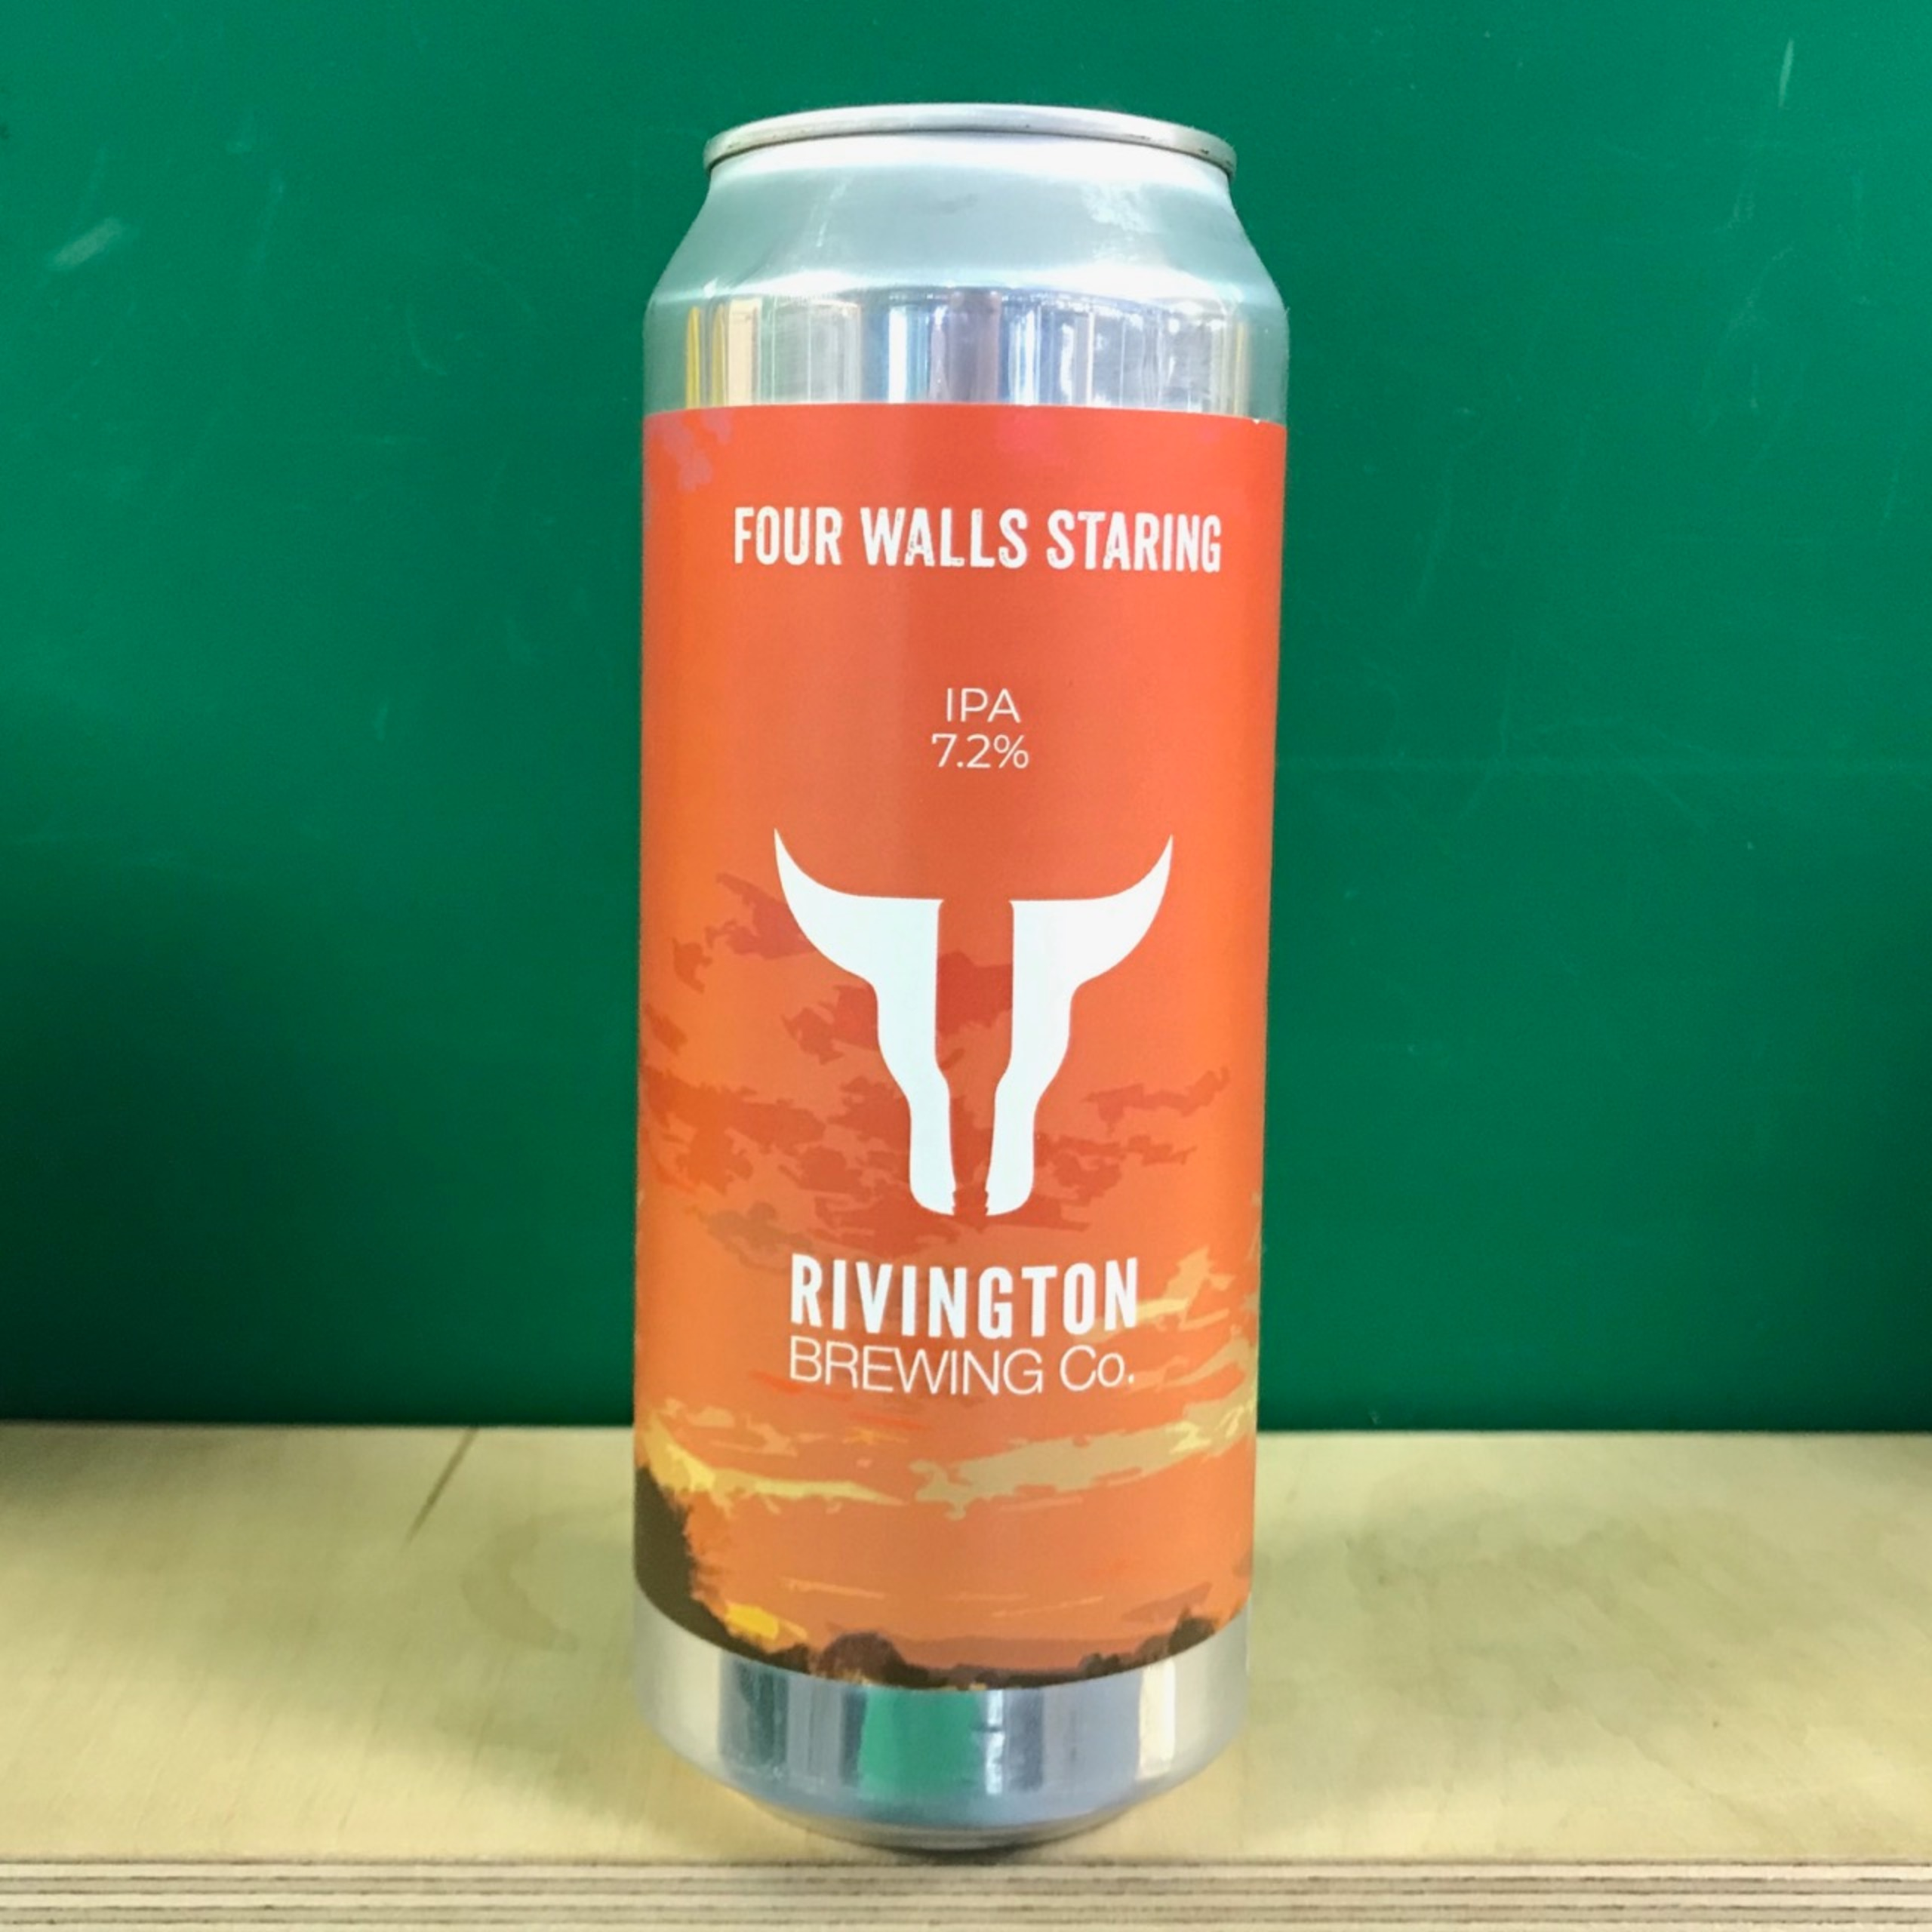 Rivington Brewing Co Four Walls Staring